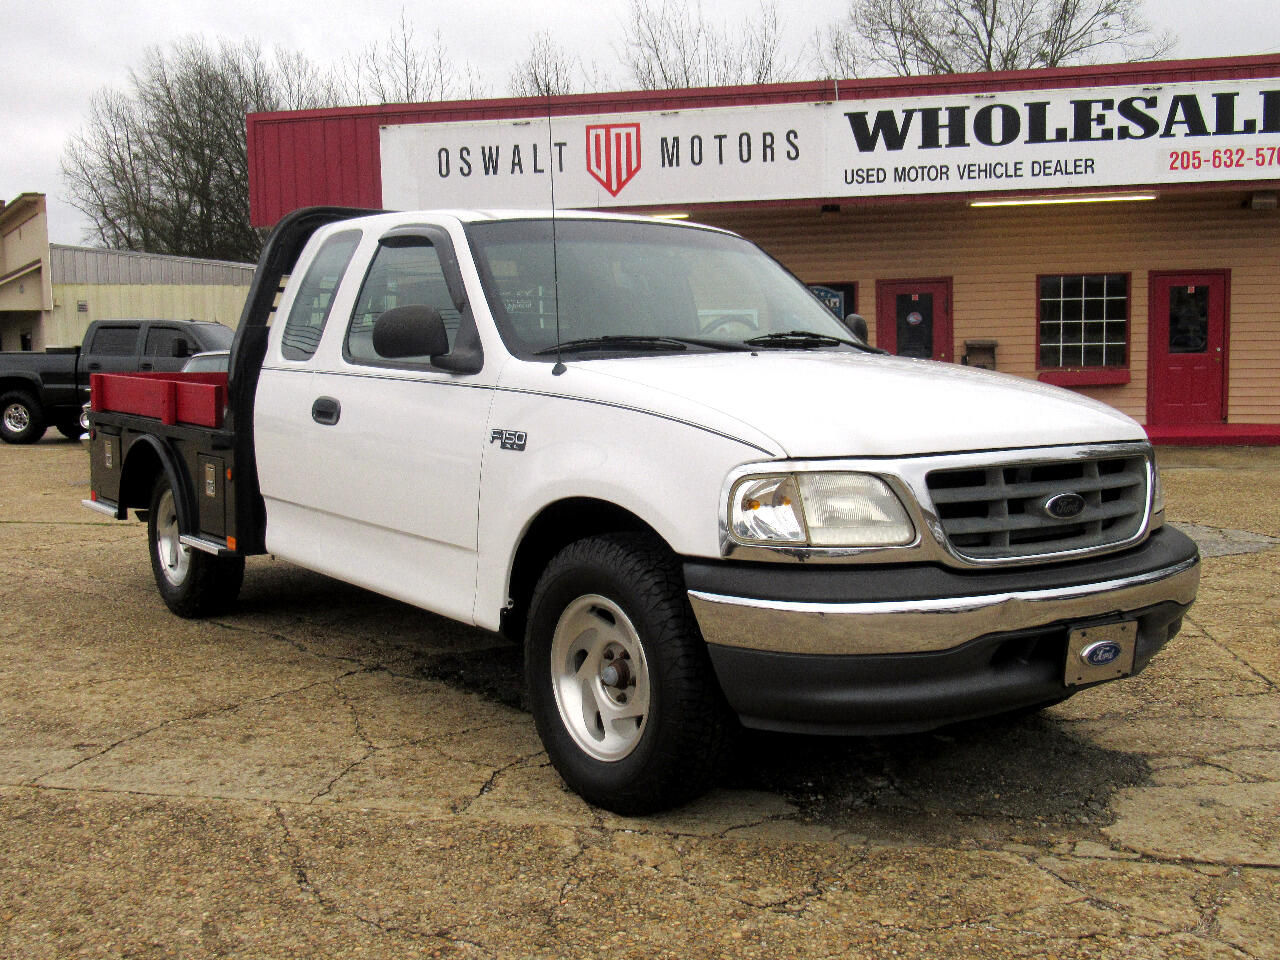 2000 Ford F-150 Supercab 139